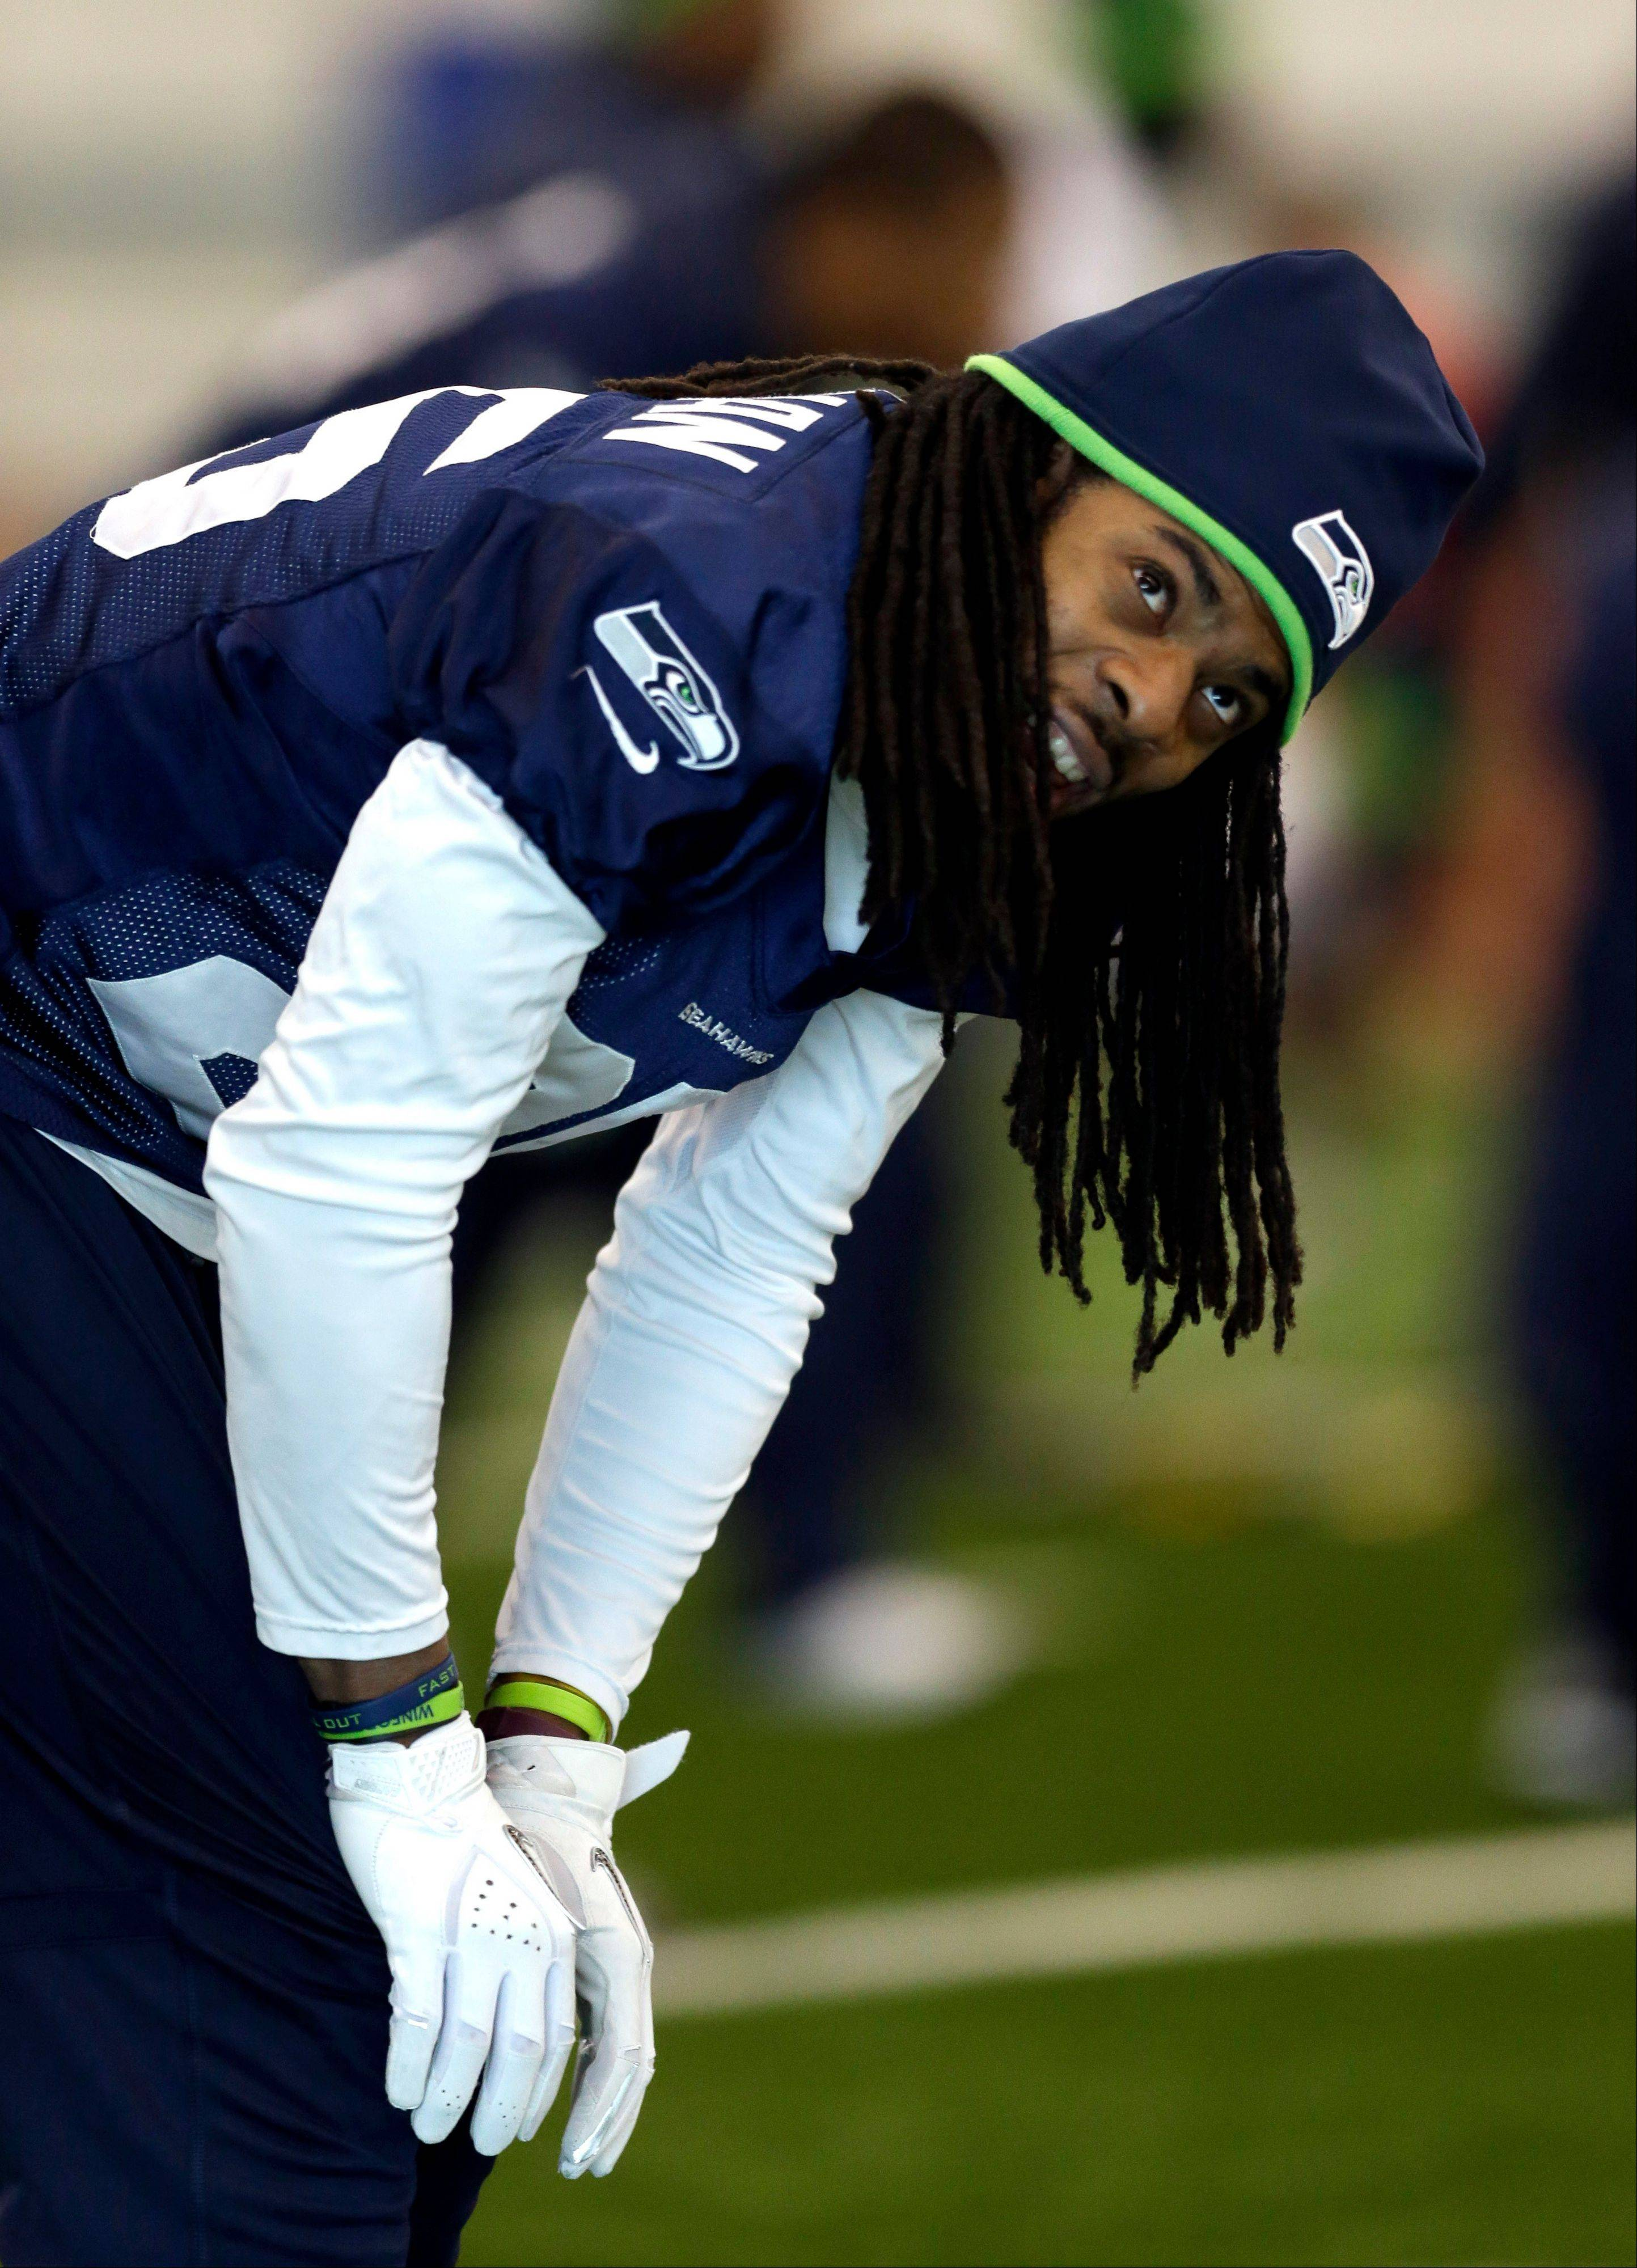 Seattle Seahawks cornerback Richard Sherman warms up during NFL football practice Friday, Jan. 31, 2014, in East Rutherford, N.J. The Seahawks and the Denver Broncos are scheduled to play in th